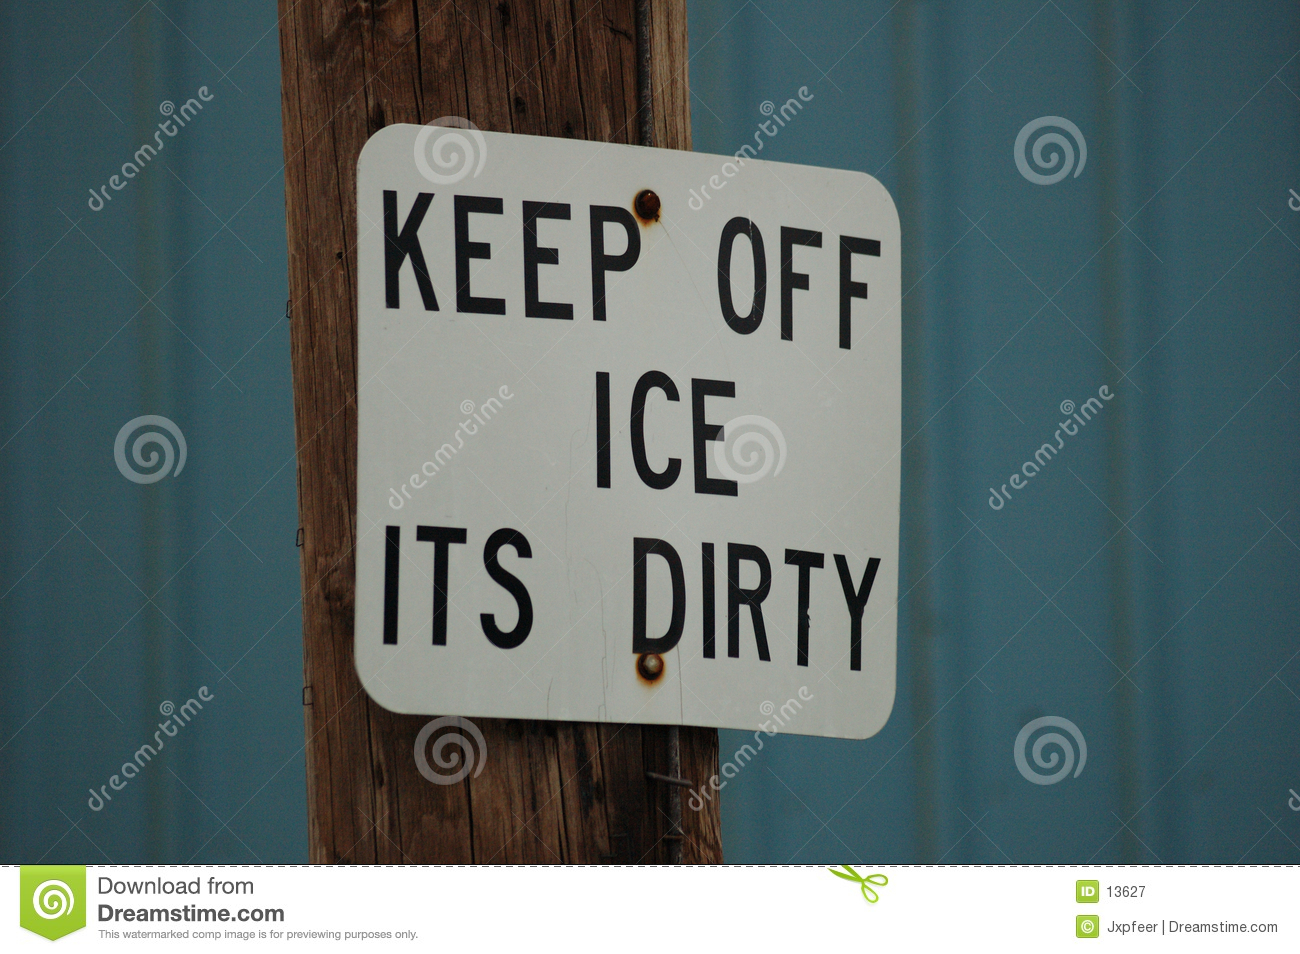 Ice is dirty